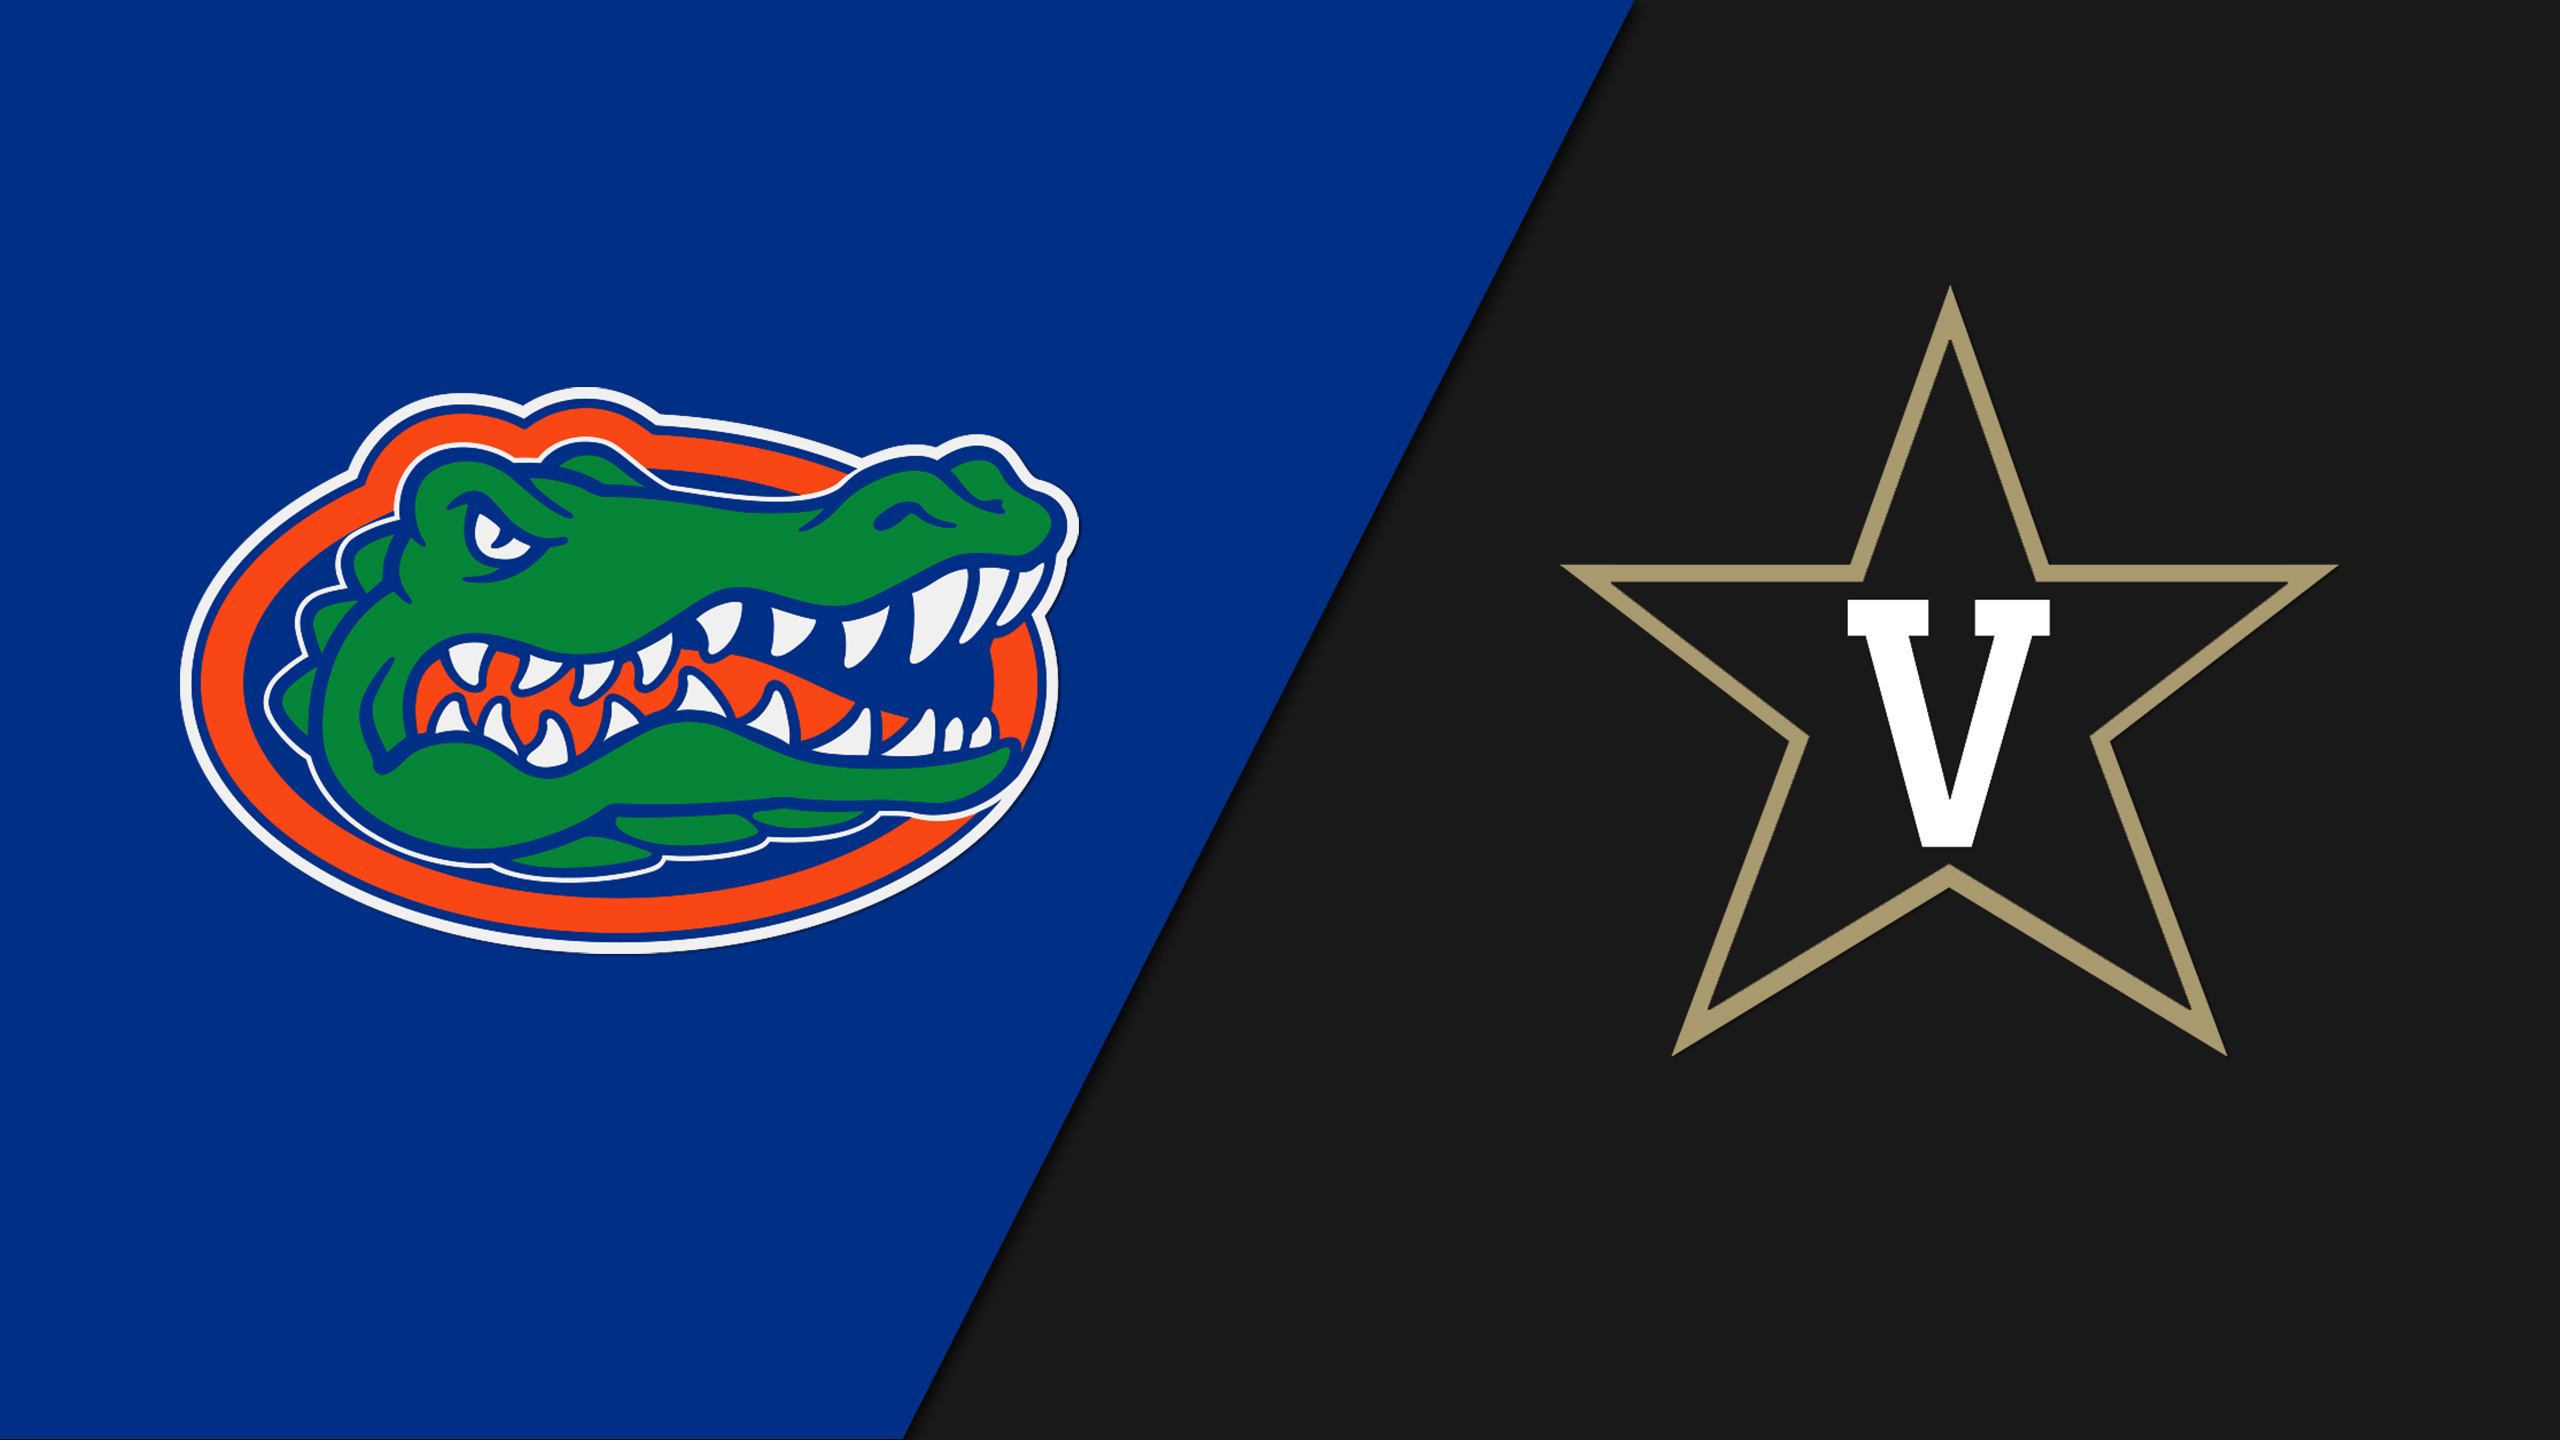 #14 Florida vs. #6 Vanderbilt (Baseball) (re-air)